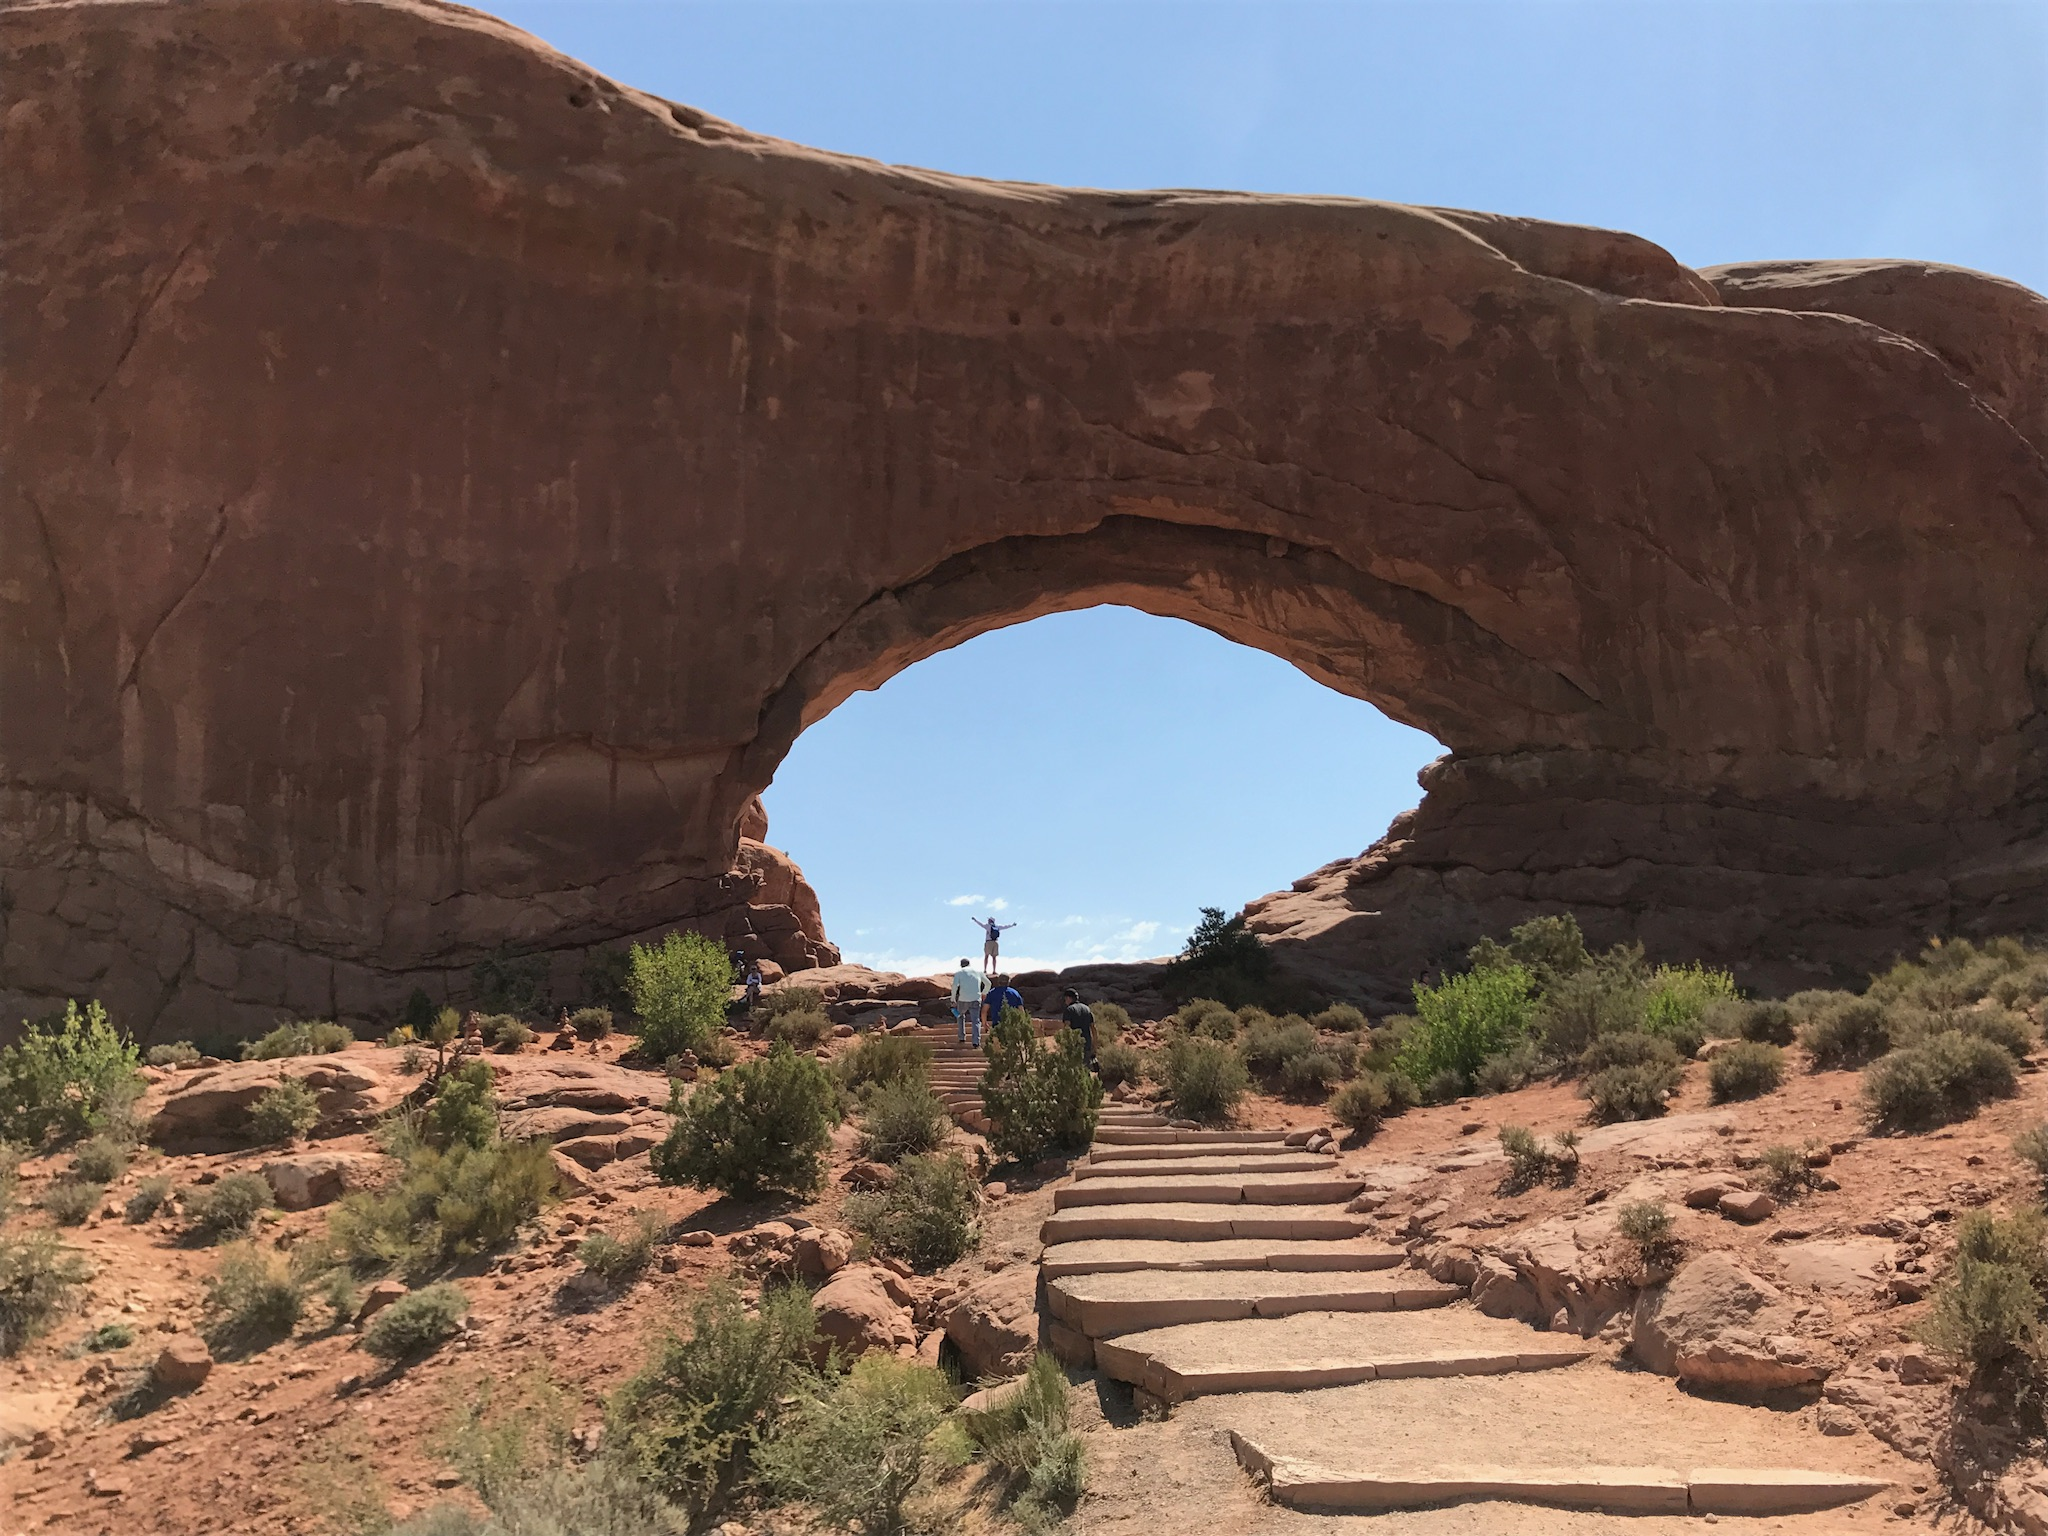 At Arches National Park in Moab, UT.